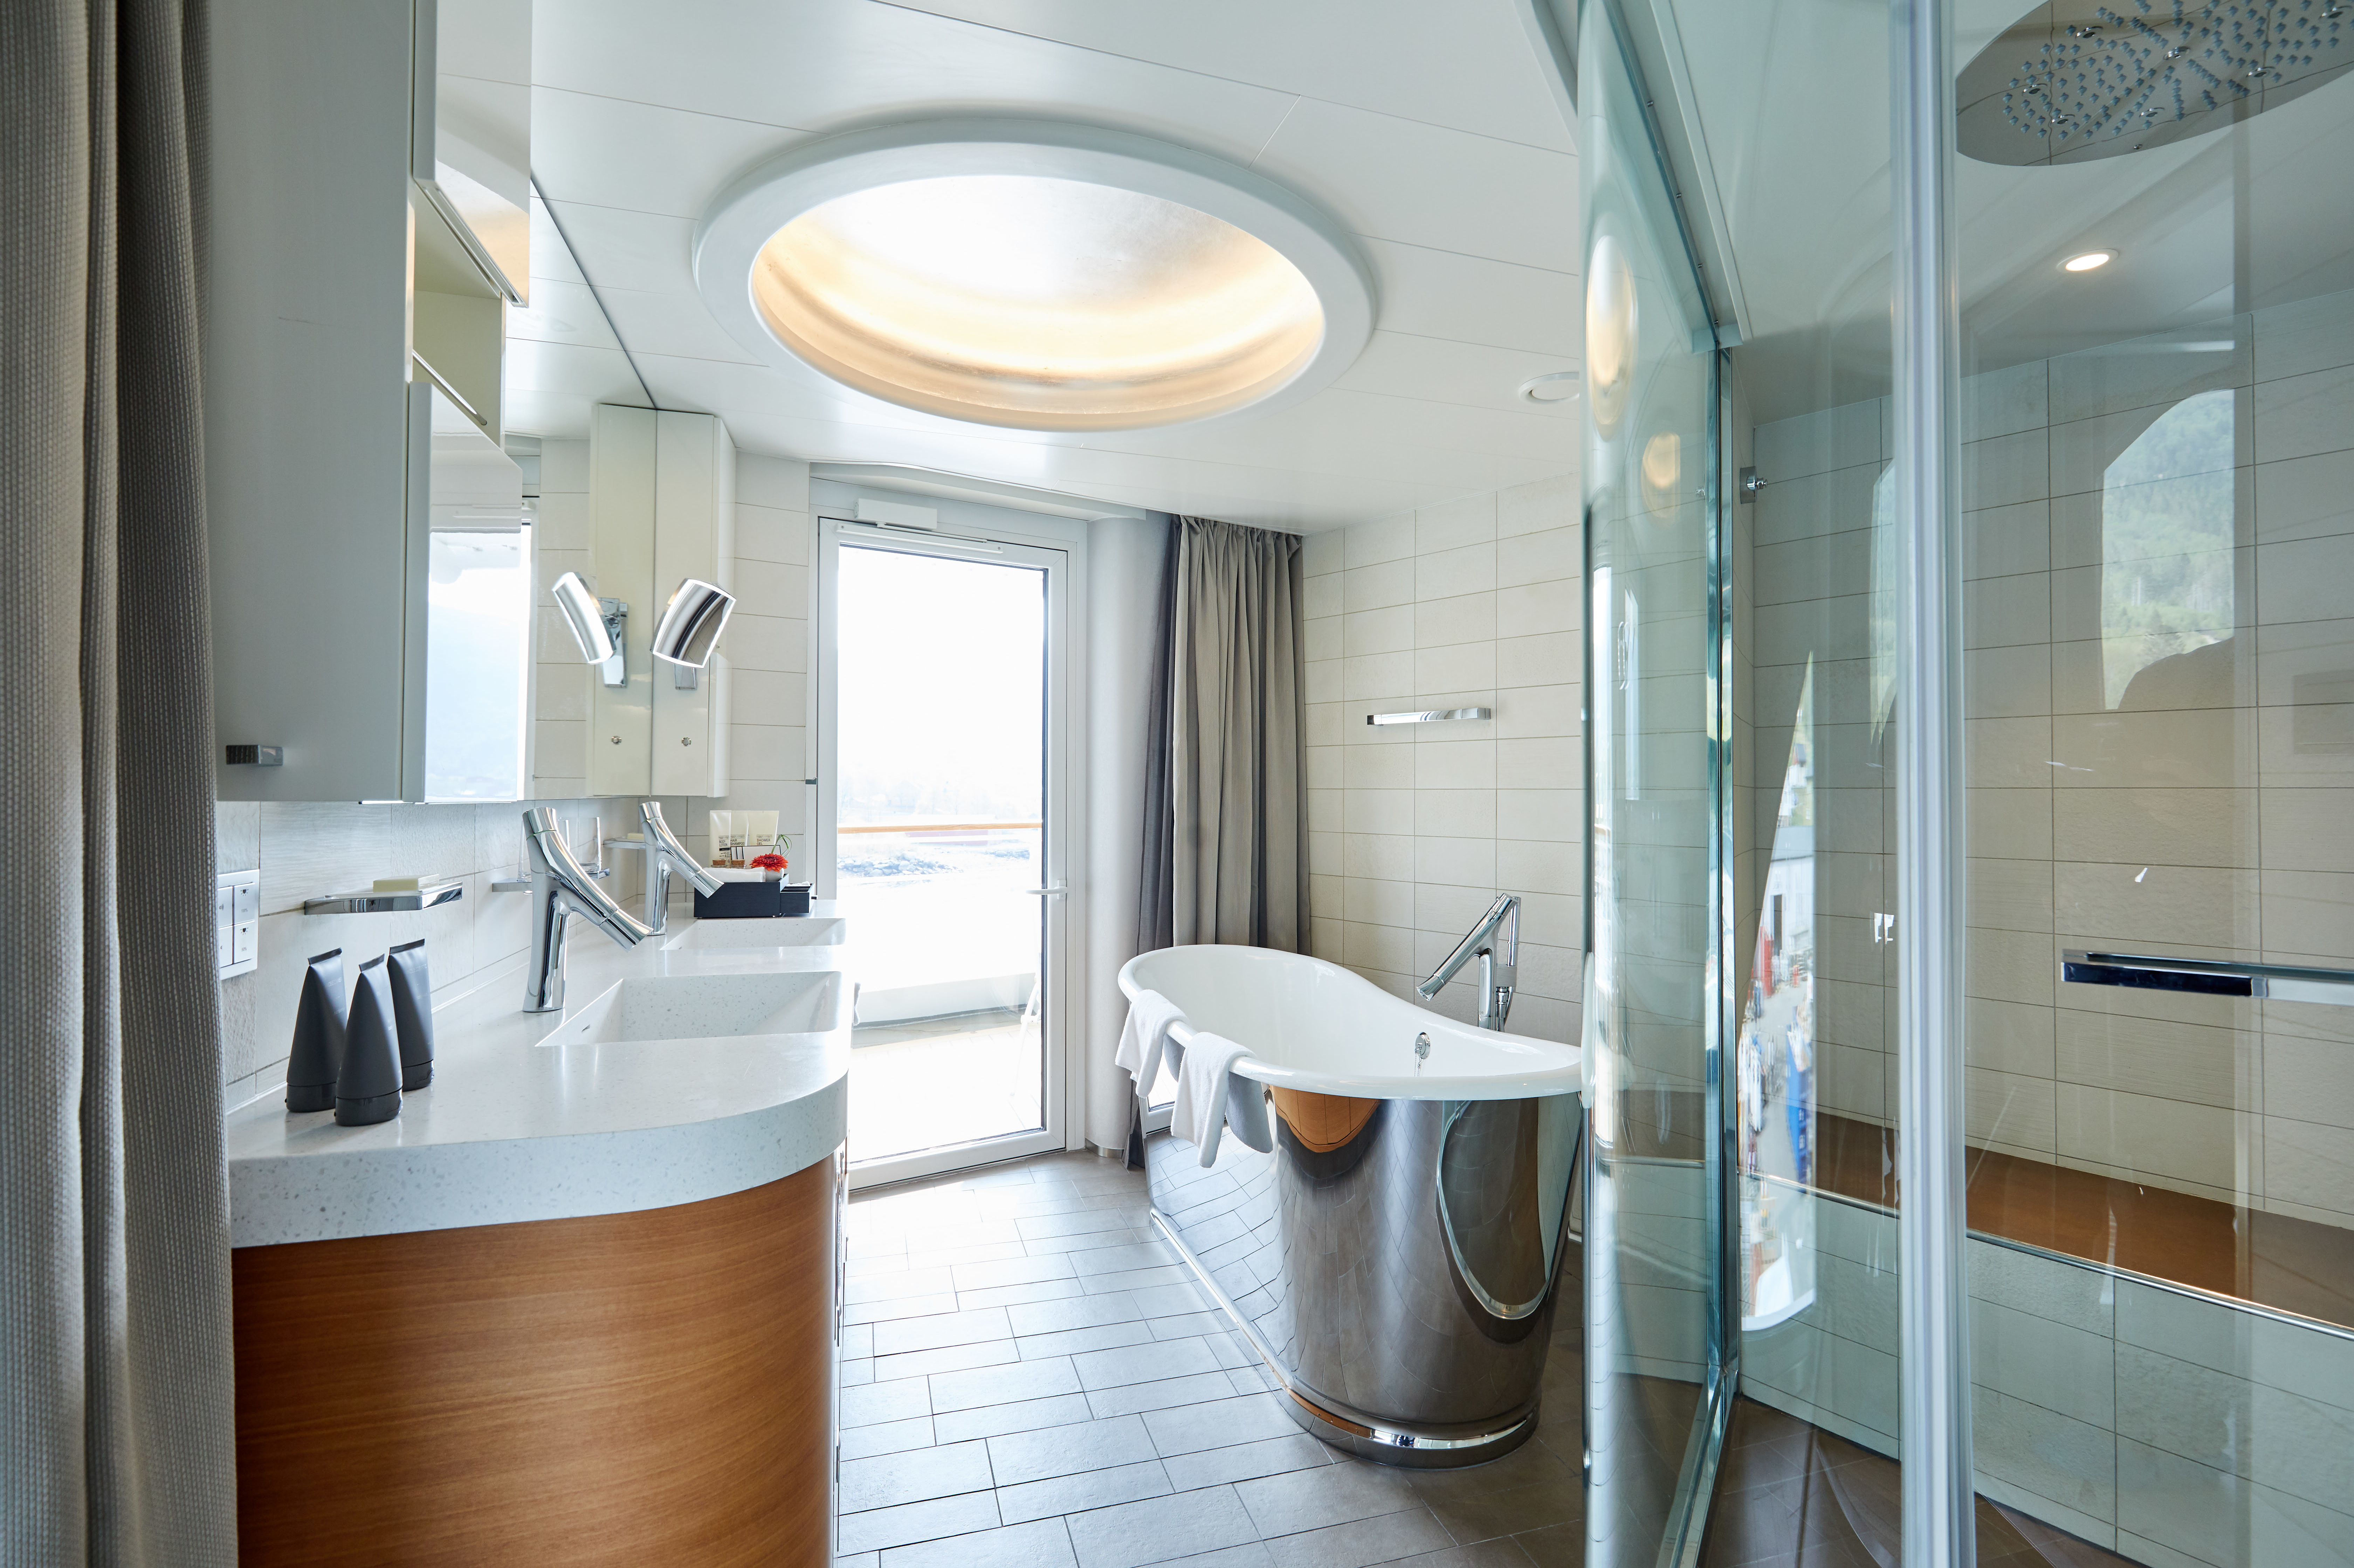 HANSEATIC nature - Grand Suite bathroom